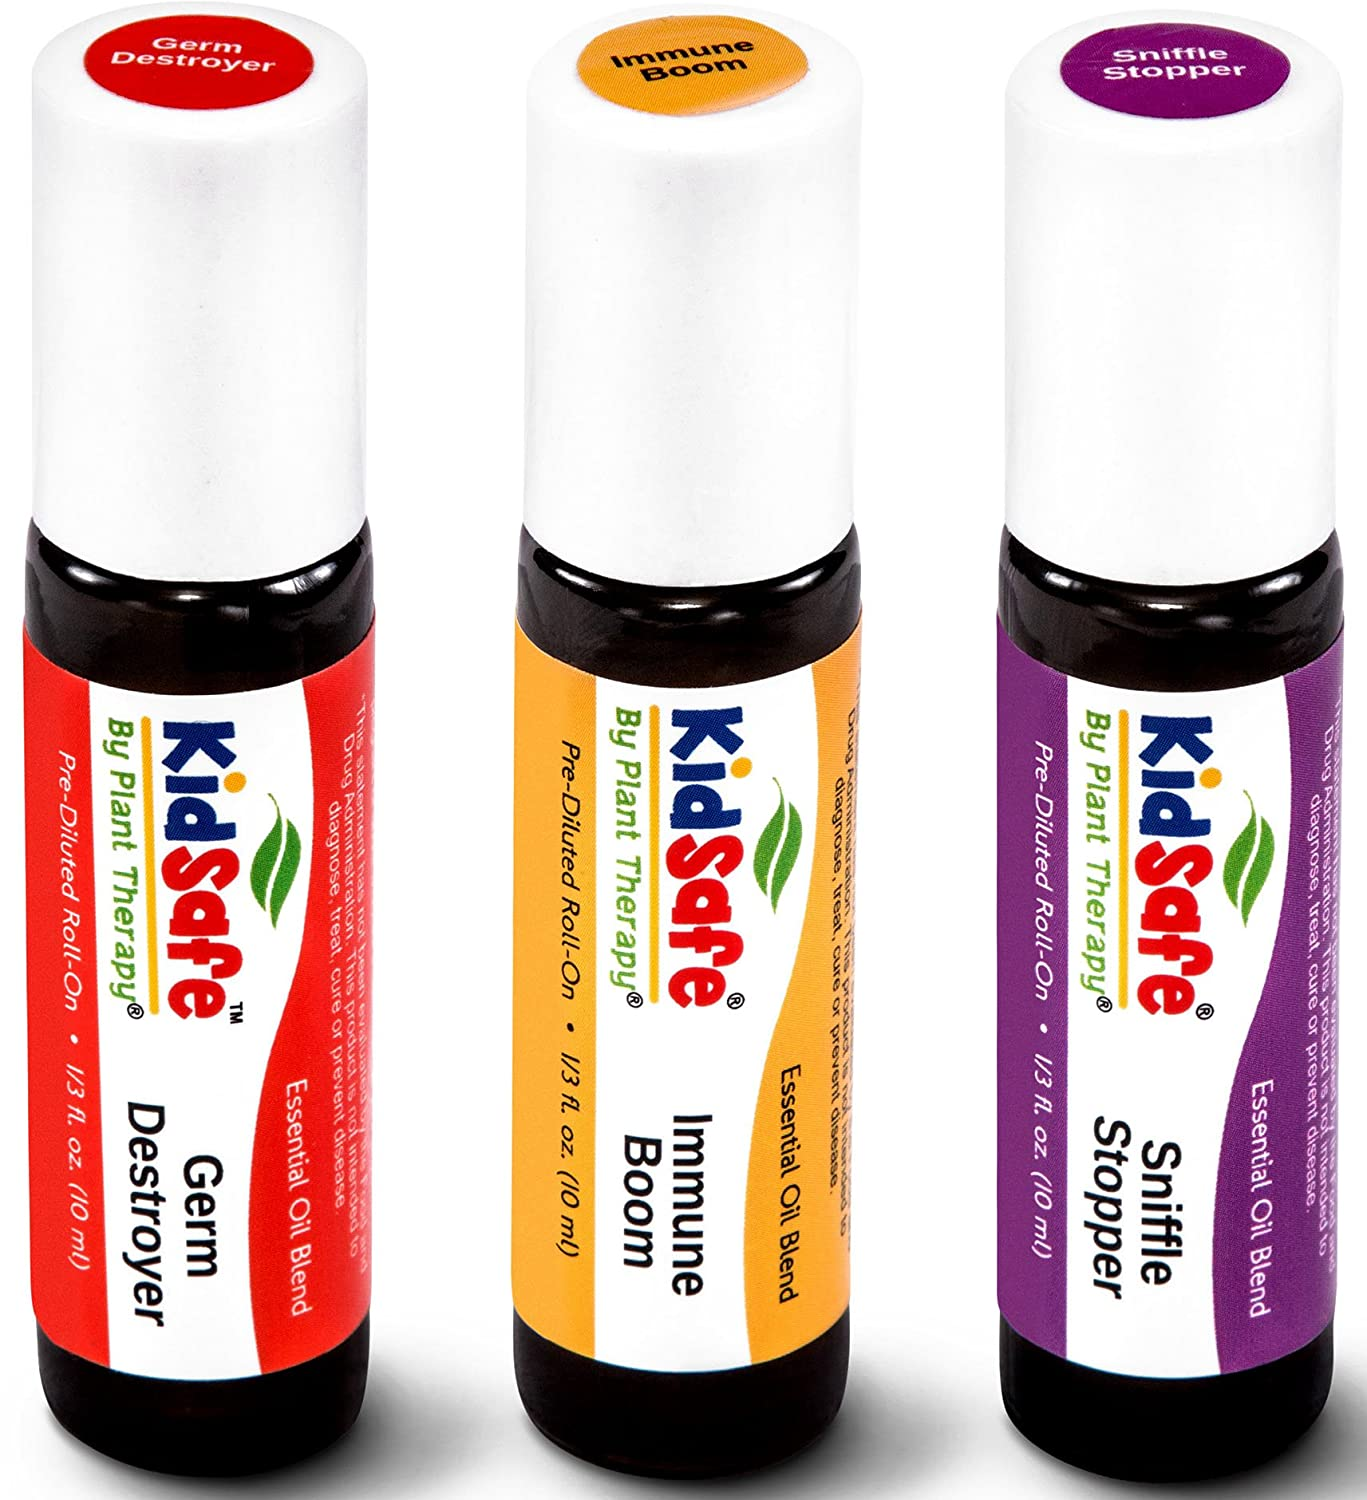 Plant Therapy KidSafe Wellness Roll-On Sampler Set. 100% Pure, Therapeutic Grade Essential Oils Diluted in Coconut Oil. Includes: Germ Destroyer, Immune Boom and Sniffle Stopper. 10 ml (1/3 oz) each. Plant Therapy Inc